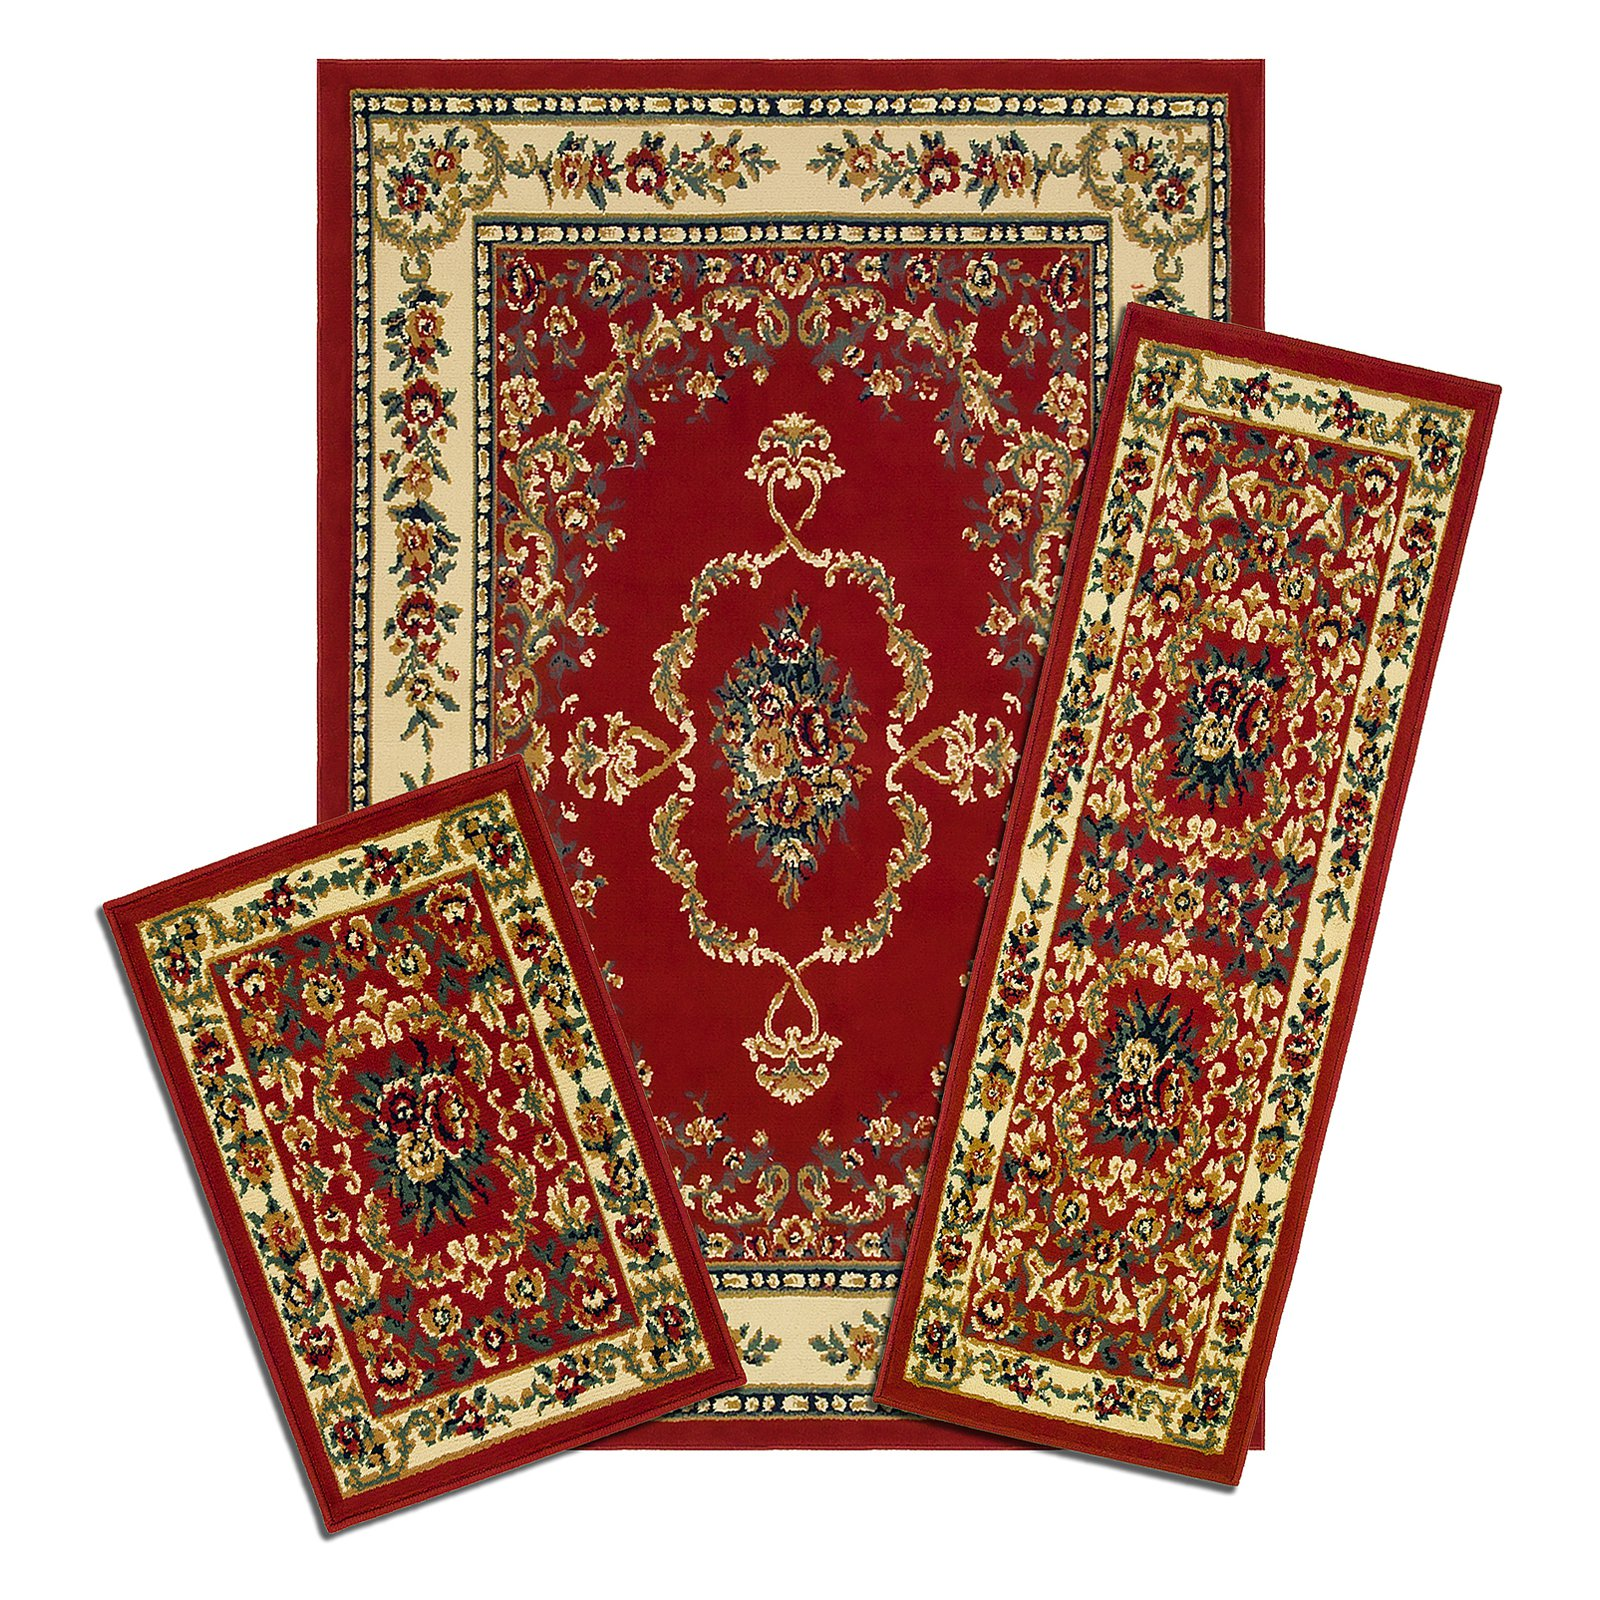 Capri 3 Piece Rug Set, Savonnerie Red